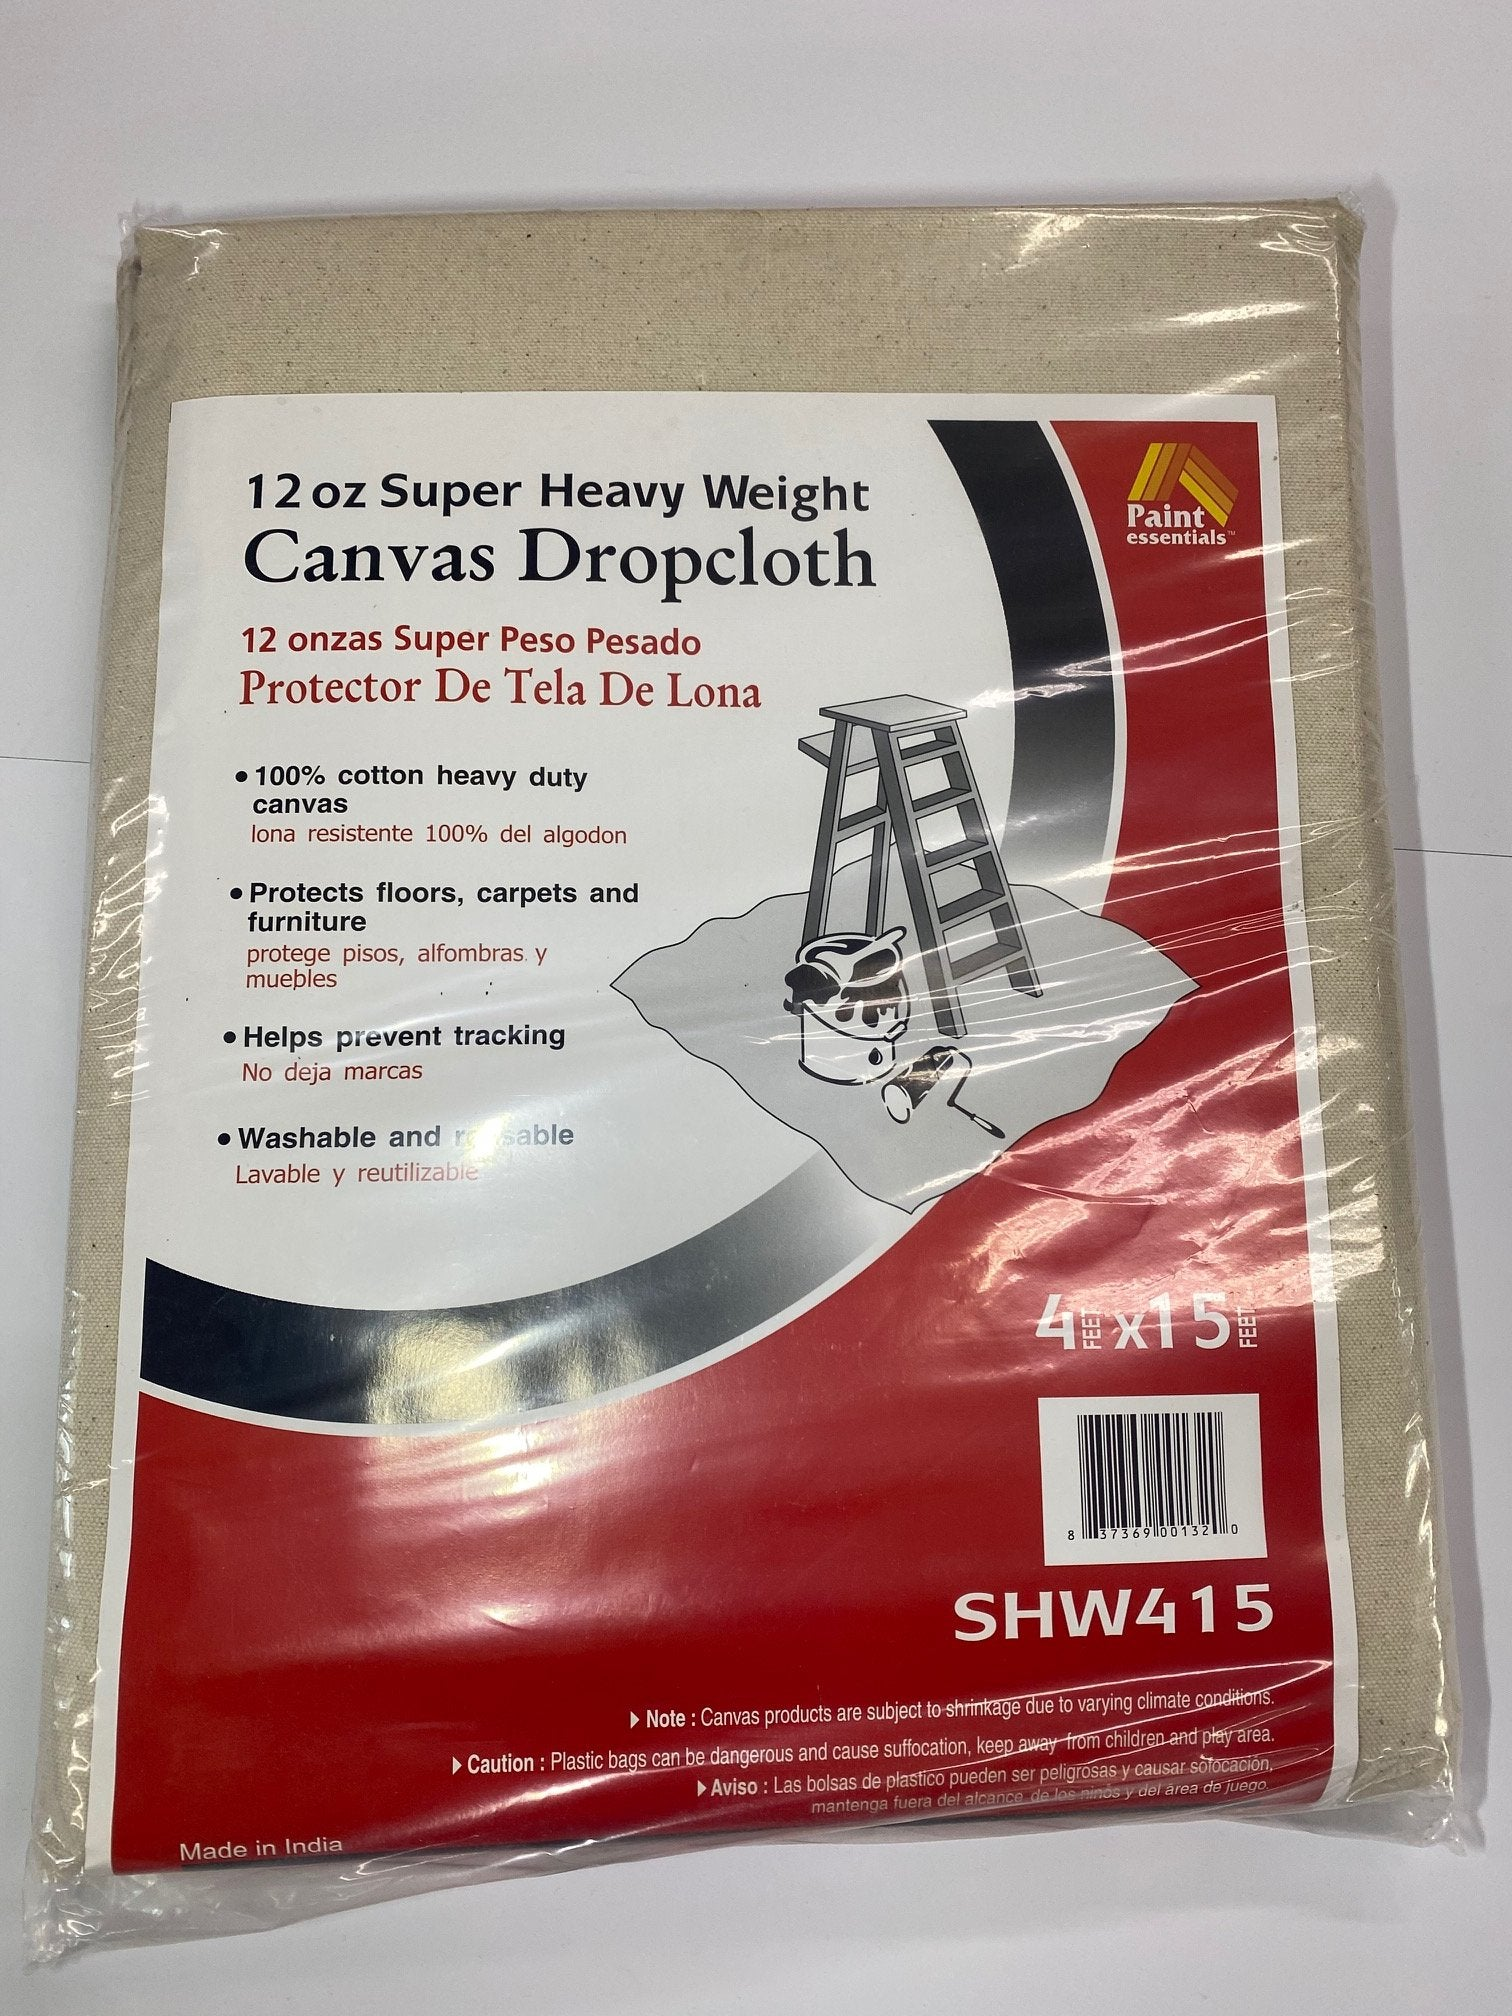 4'x15' Drop Cloth Canvas Heavy Duty 12oz., available at Catalina Paints in CA.